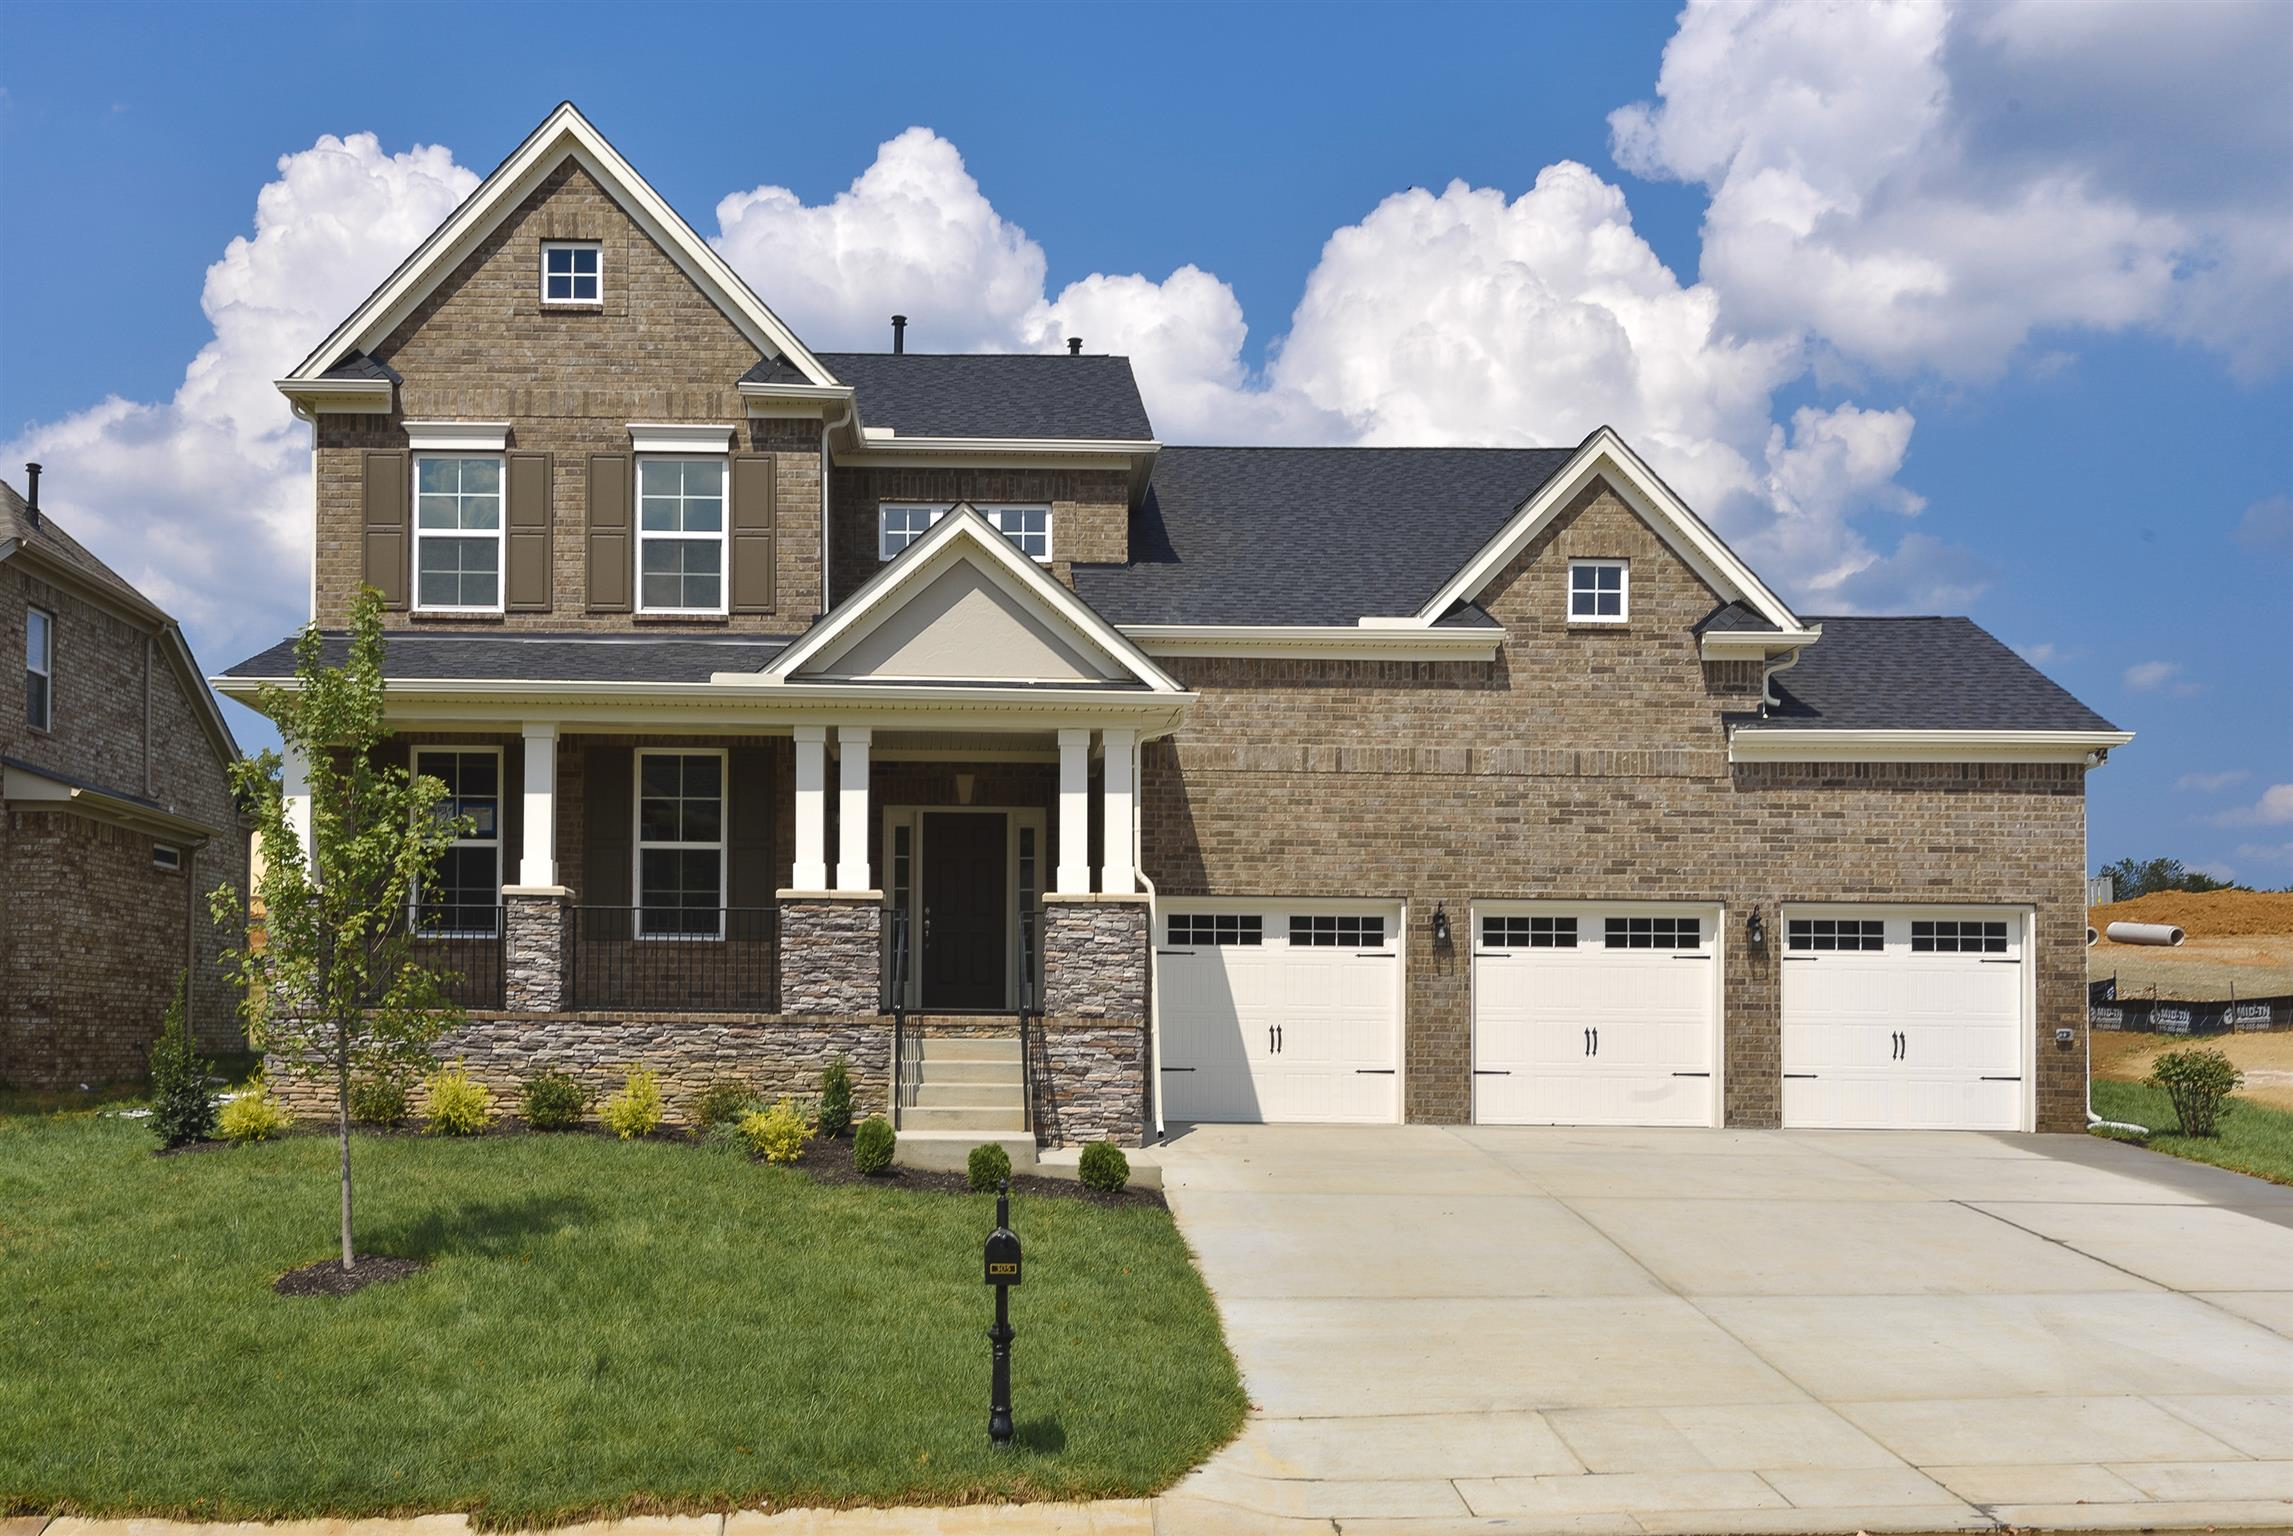 $489,900 - 4Br/4Ba -  for Sale in Baird Farms, Mount Juliet